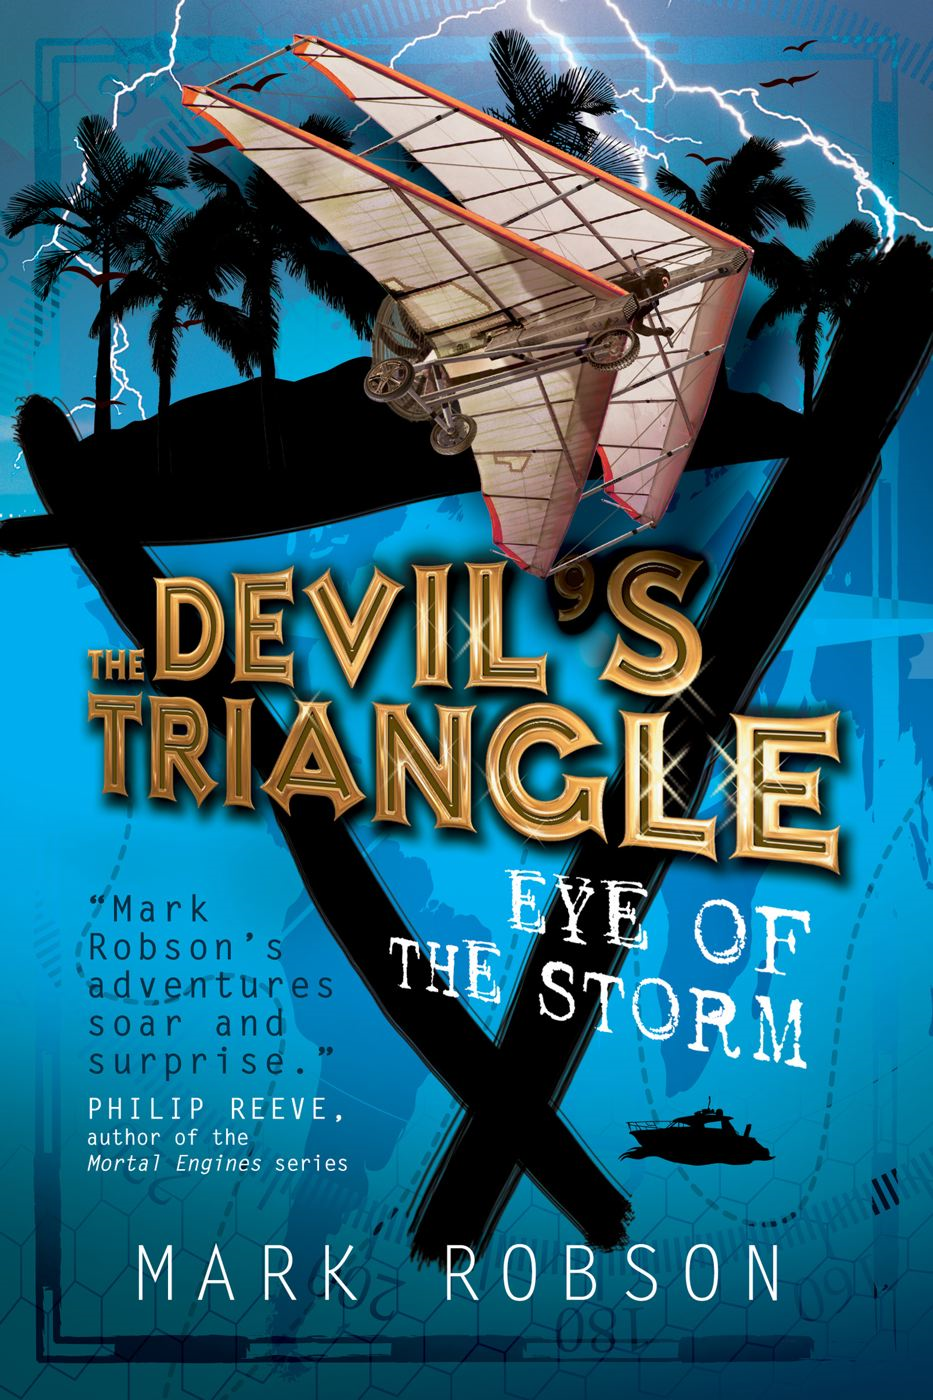 The Devil's Triangle: Eye of the Storm By: Mark Robson